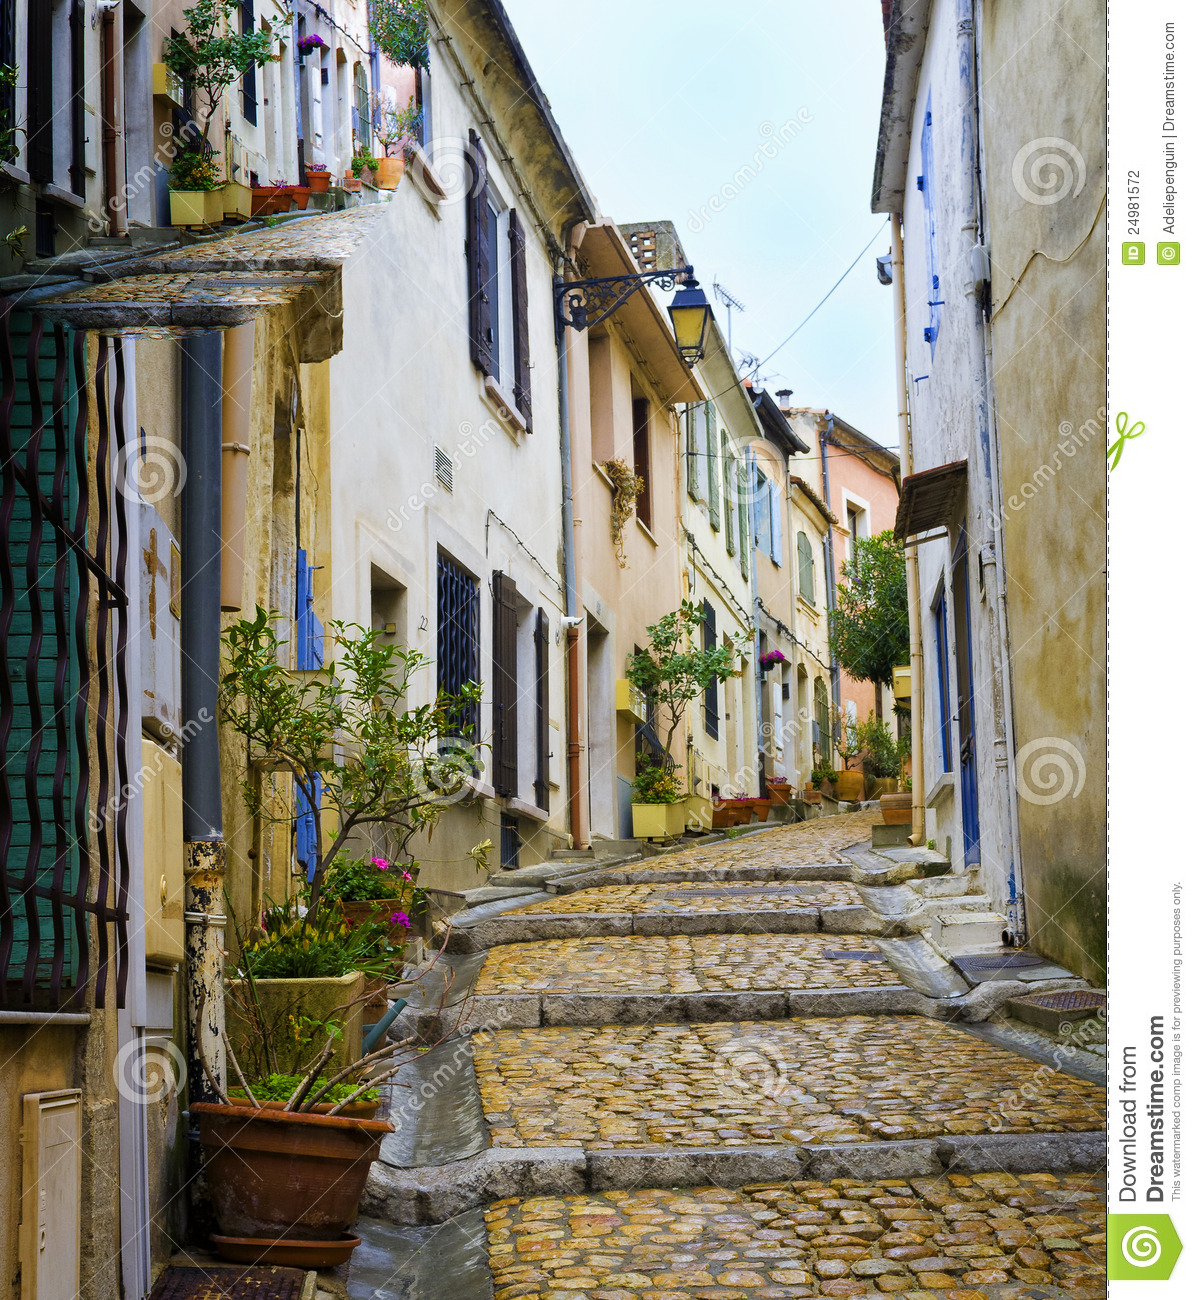 Arles France  City pictures : Charming, Colorful Street, Arles France Stock Photography Image ...